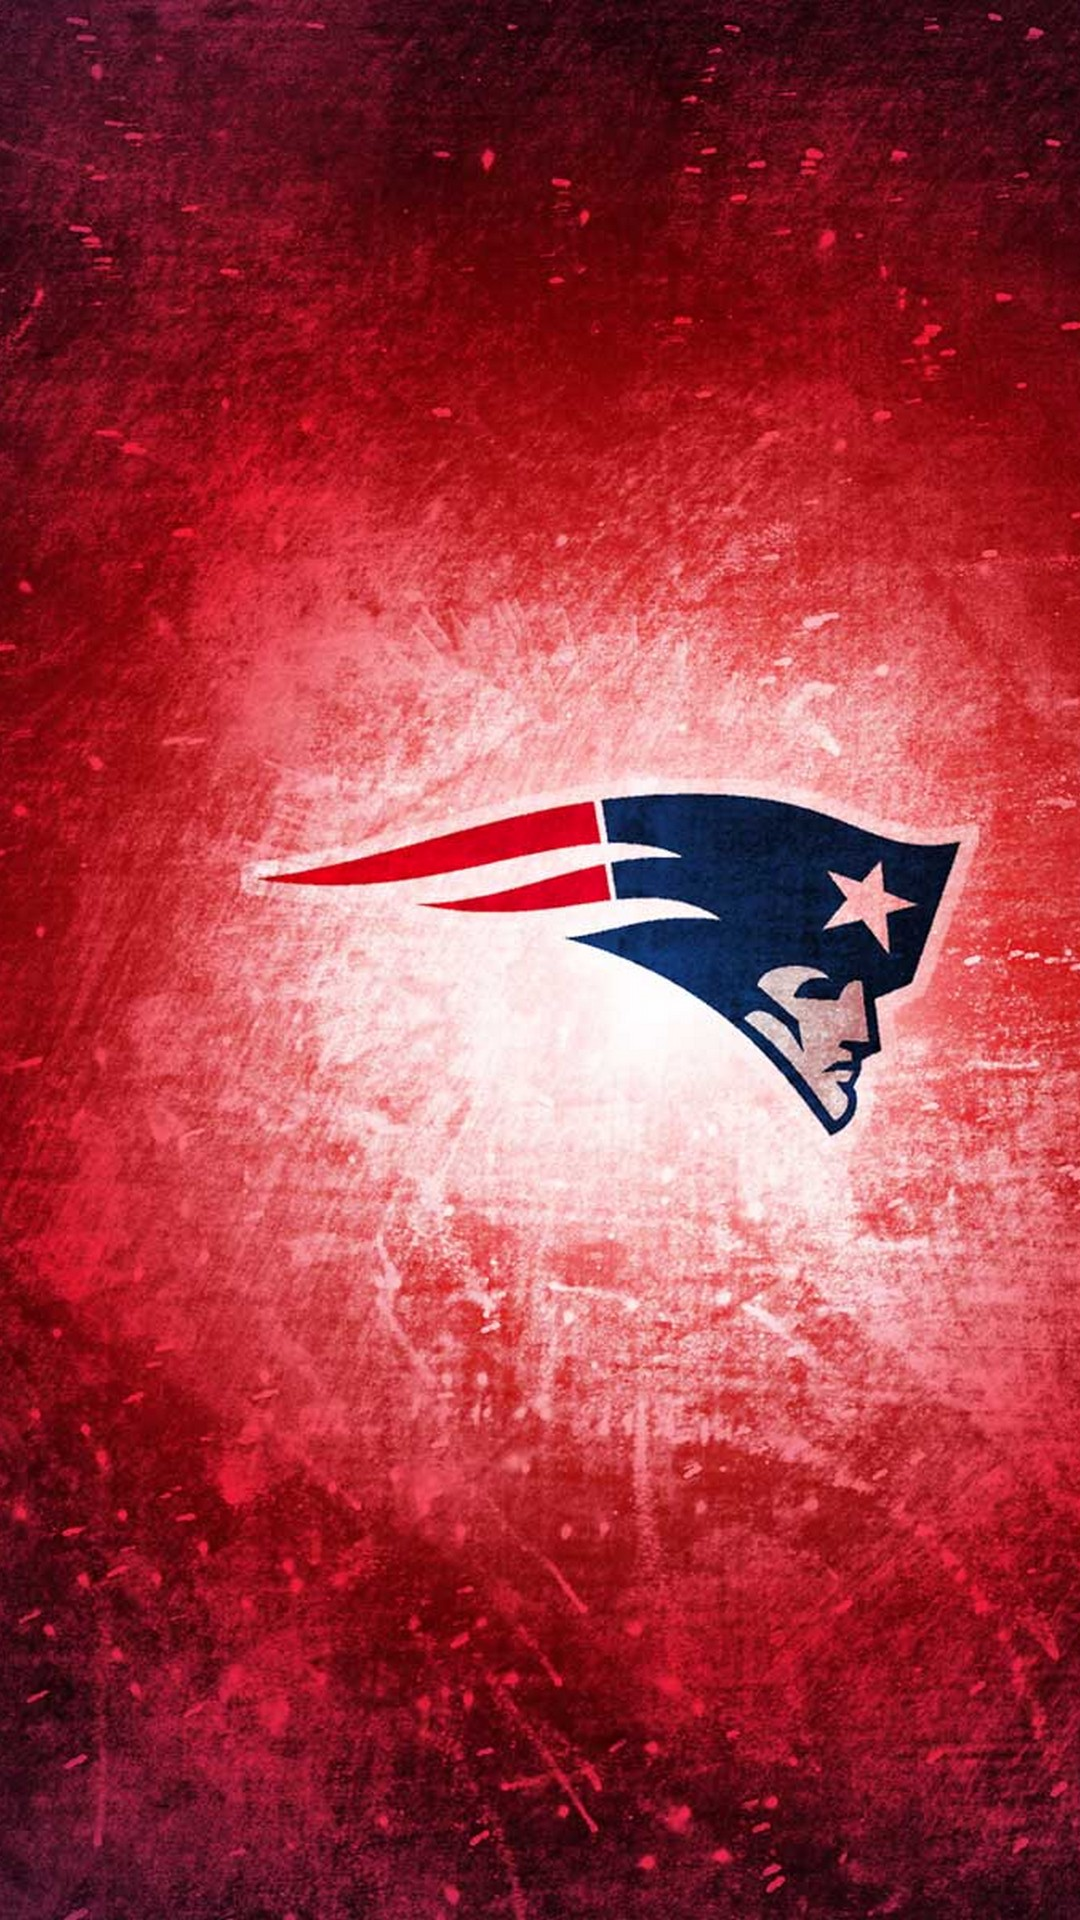 New England Patriots Wallpaper For Iphone With High-resolution - New England Patriots Ps4 - HD Wallpaper